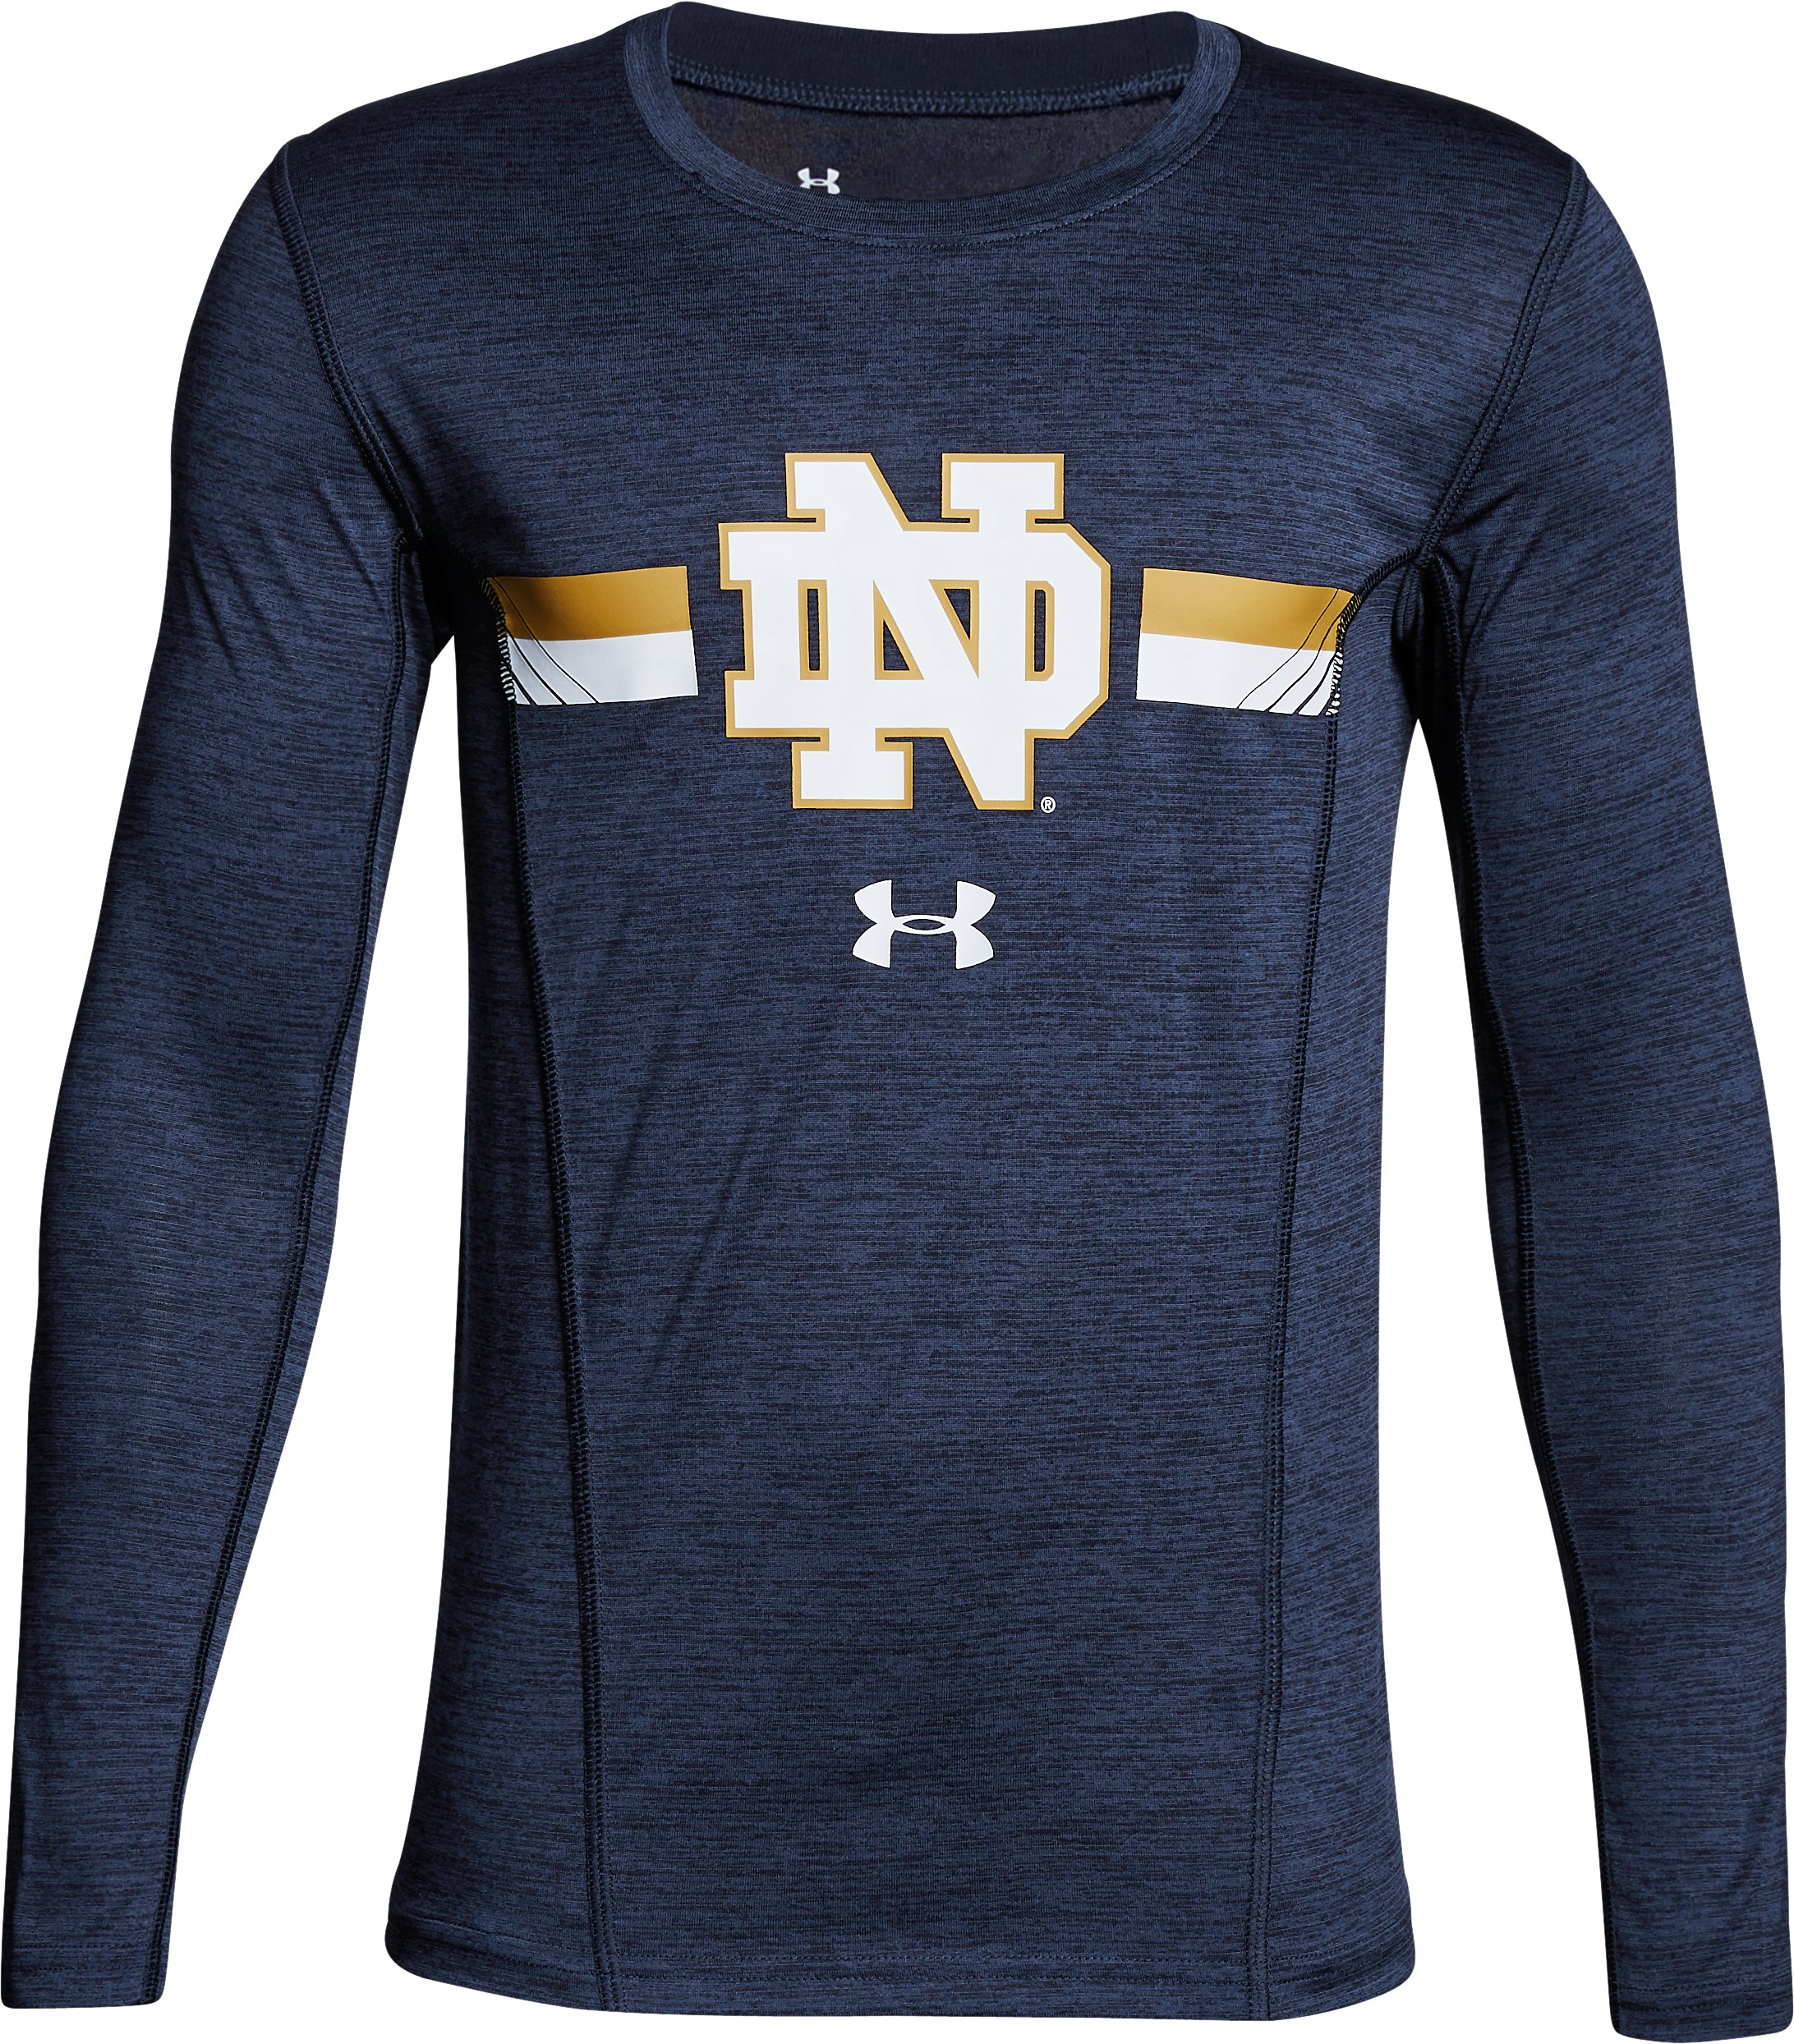 Boys' Notre Dame Long Sleeve Training T-Shirt, Midnight Navy, undefined